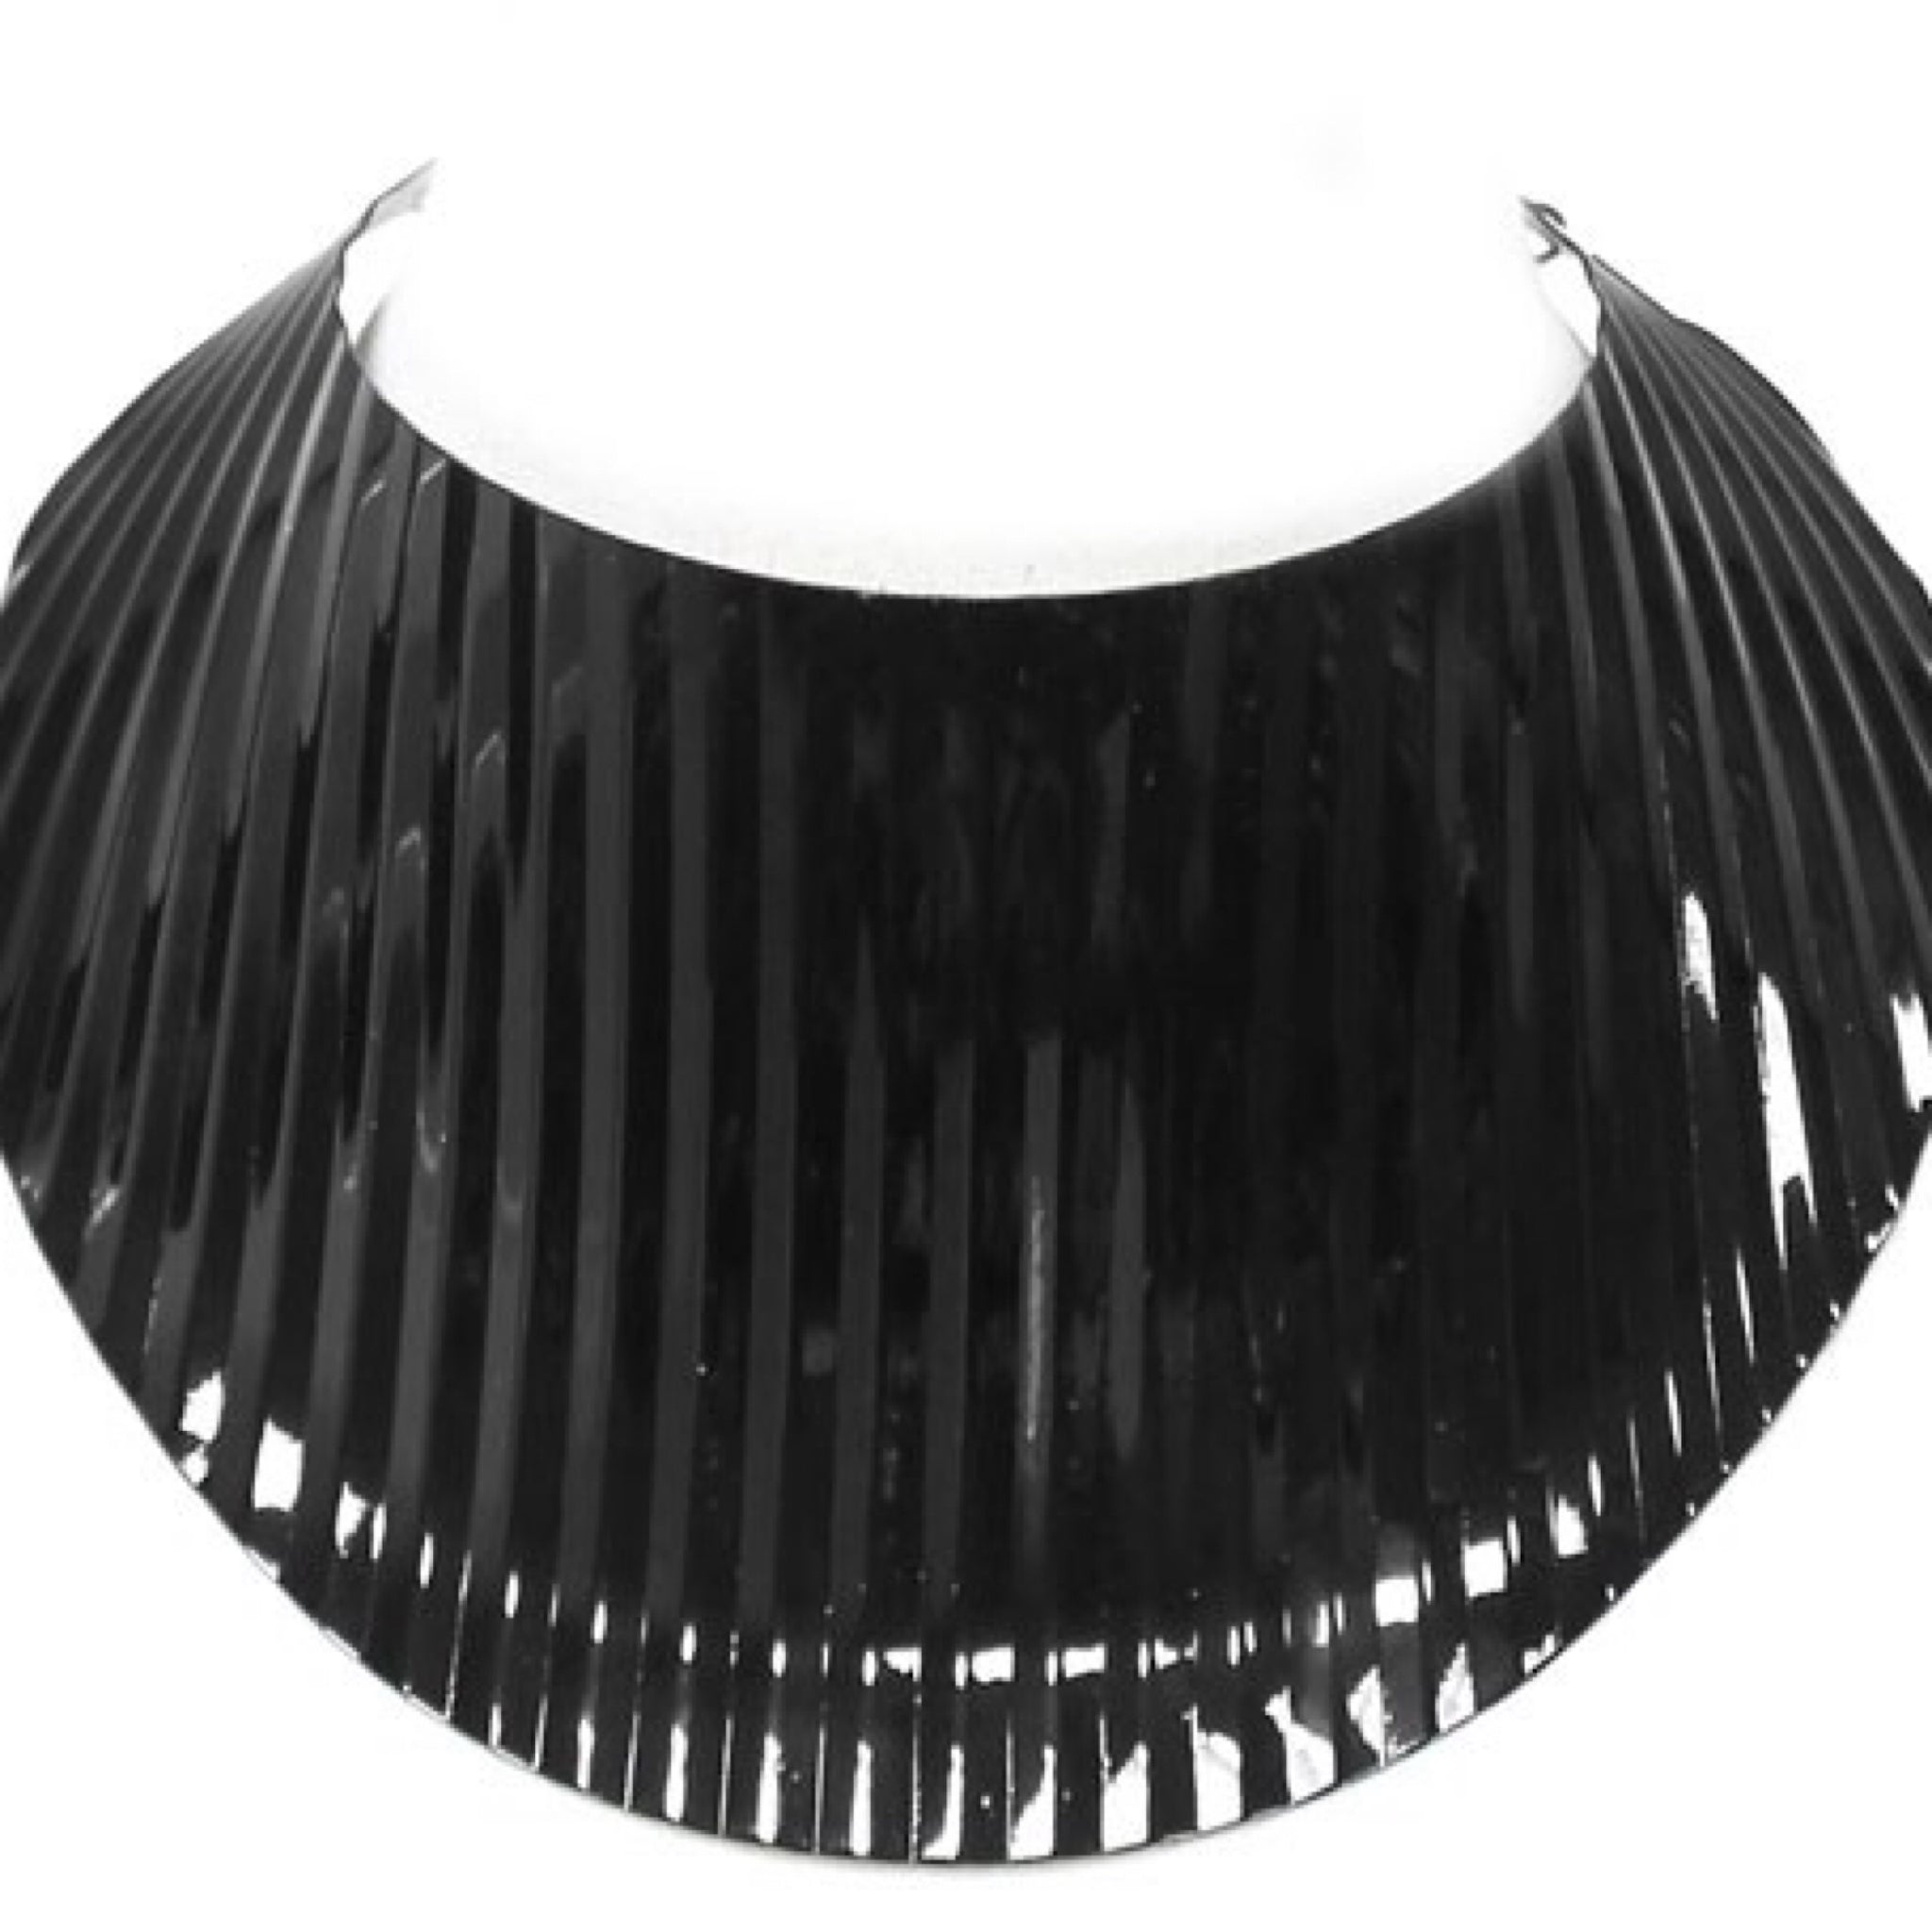 Metal Choker Statement Necklace